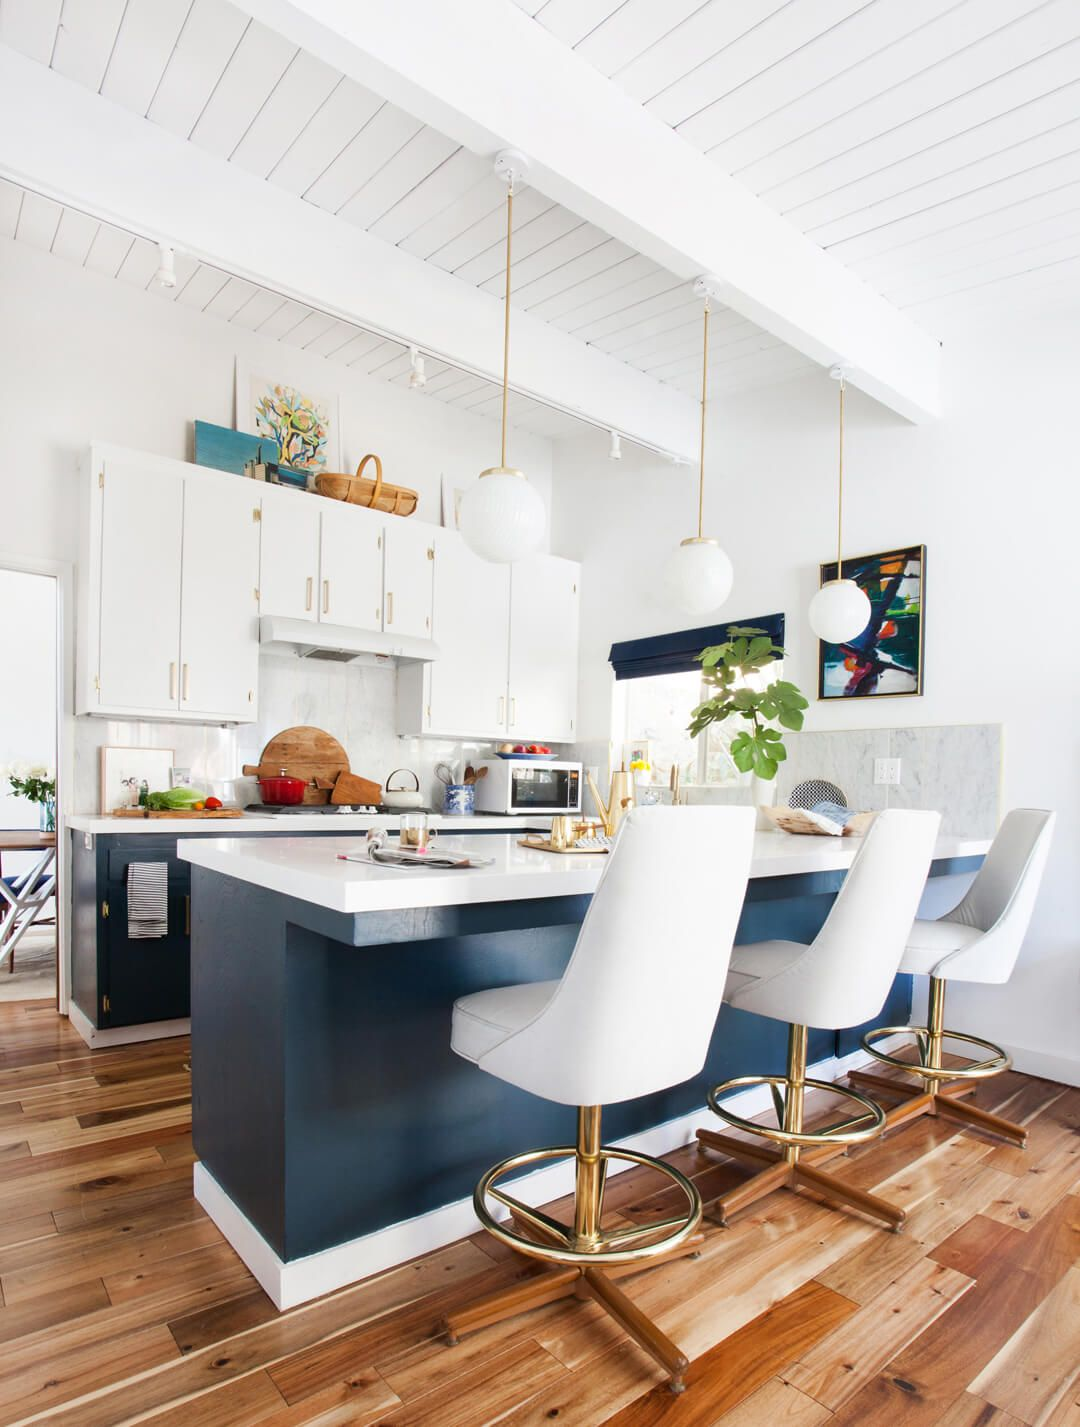 14 Ideas for Decorating Space Above Kitchen Cabinets , How